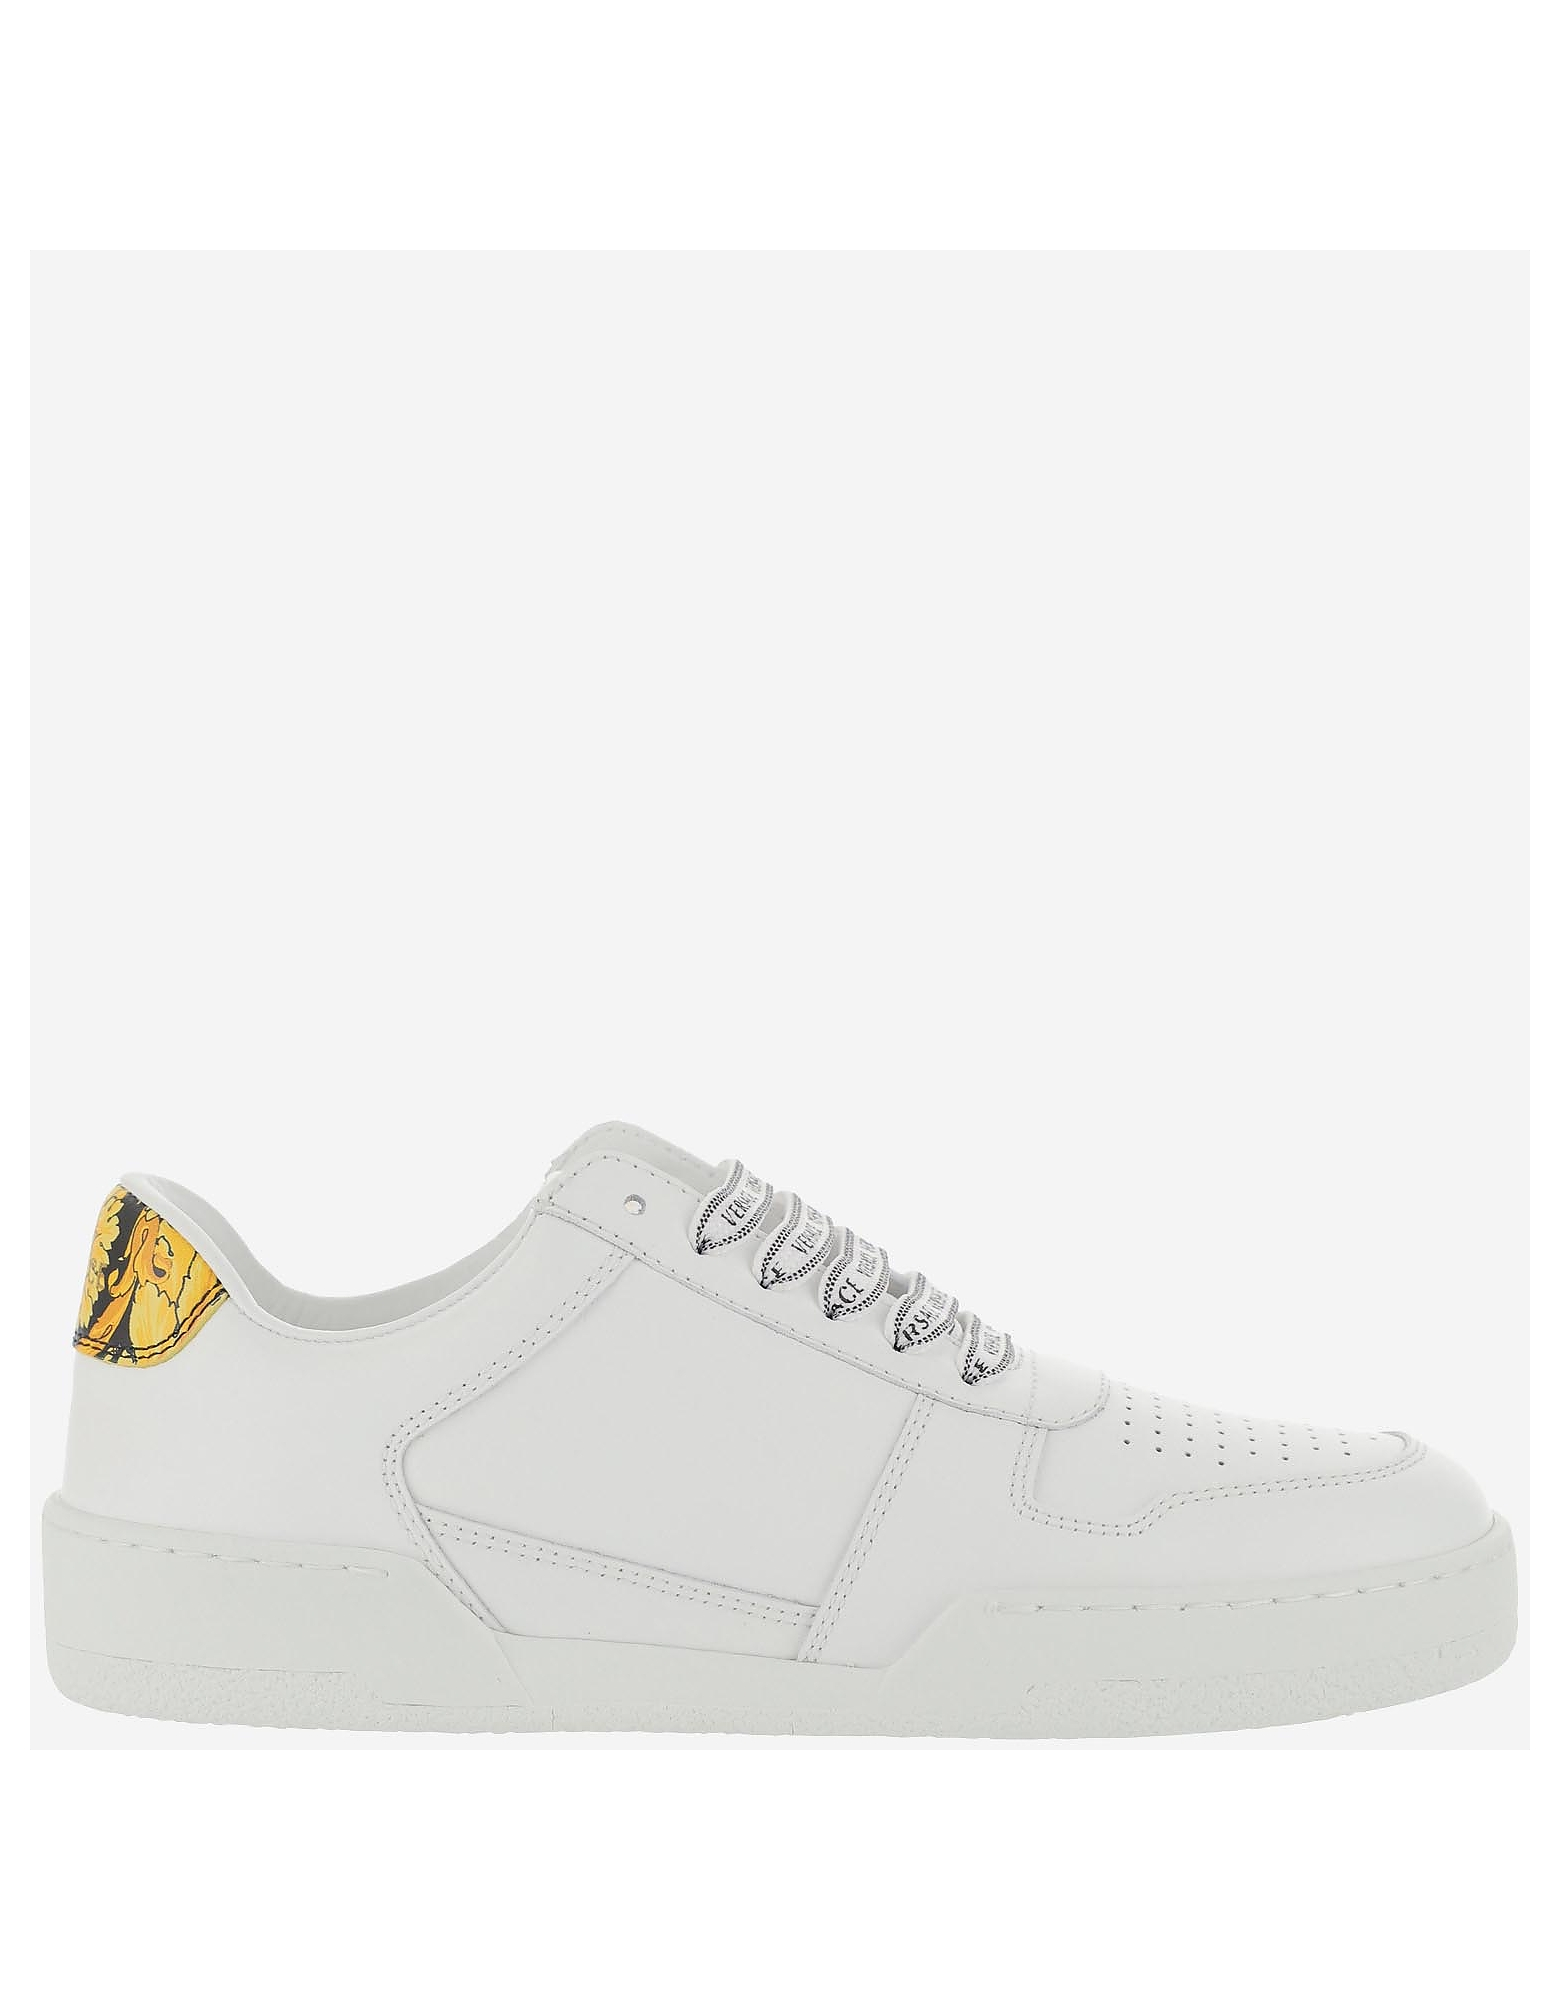 Versace Designer Shoes, White and Gold Leather Low Top Women's Sneakers